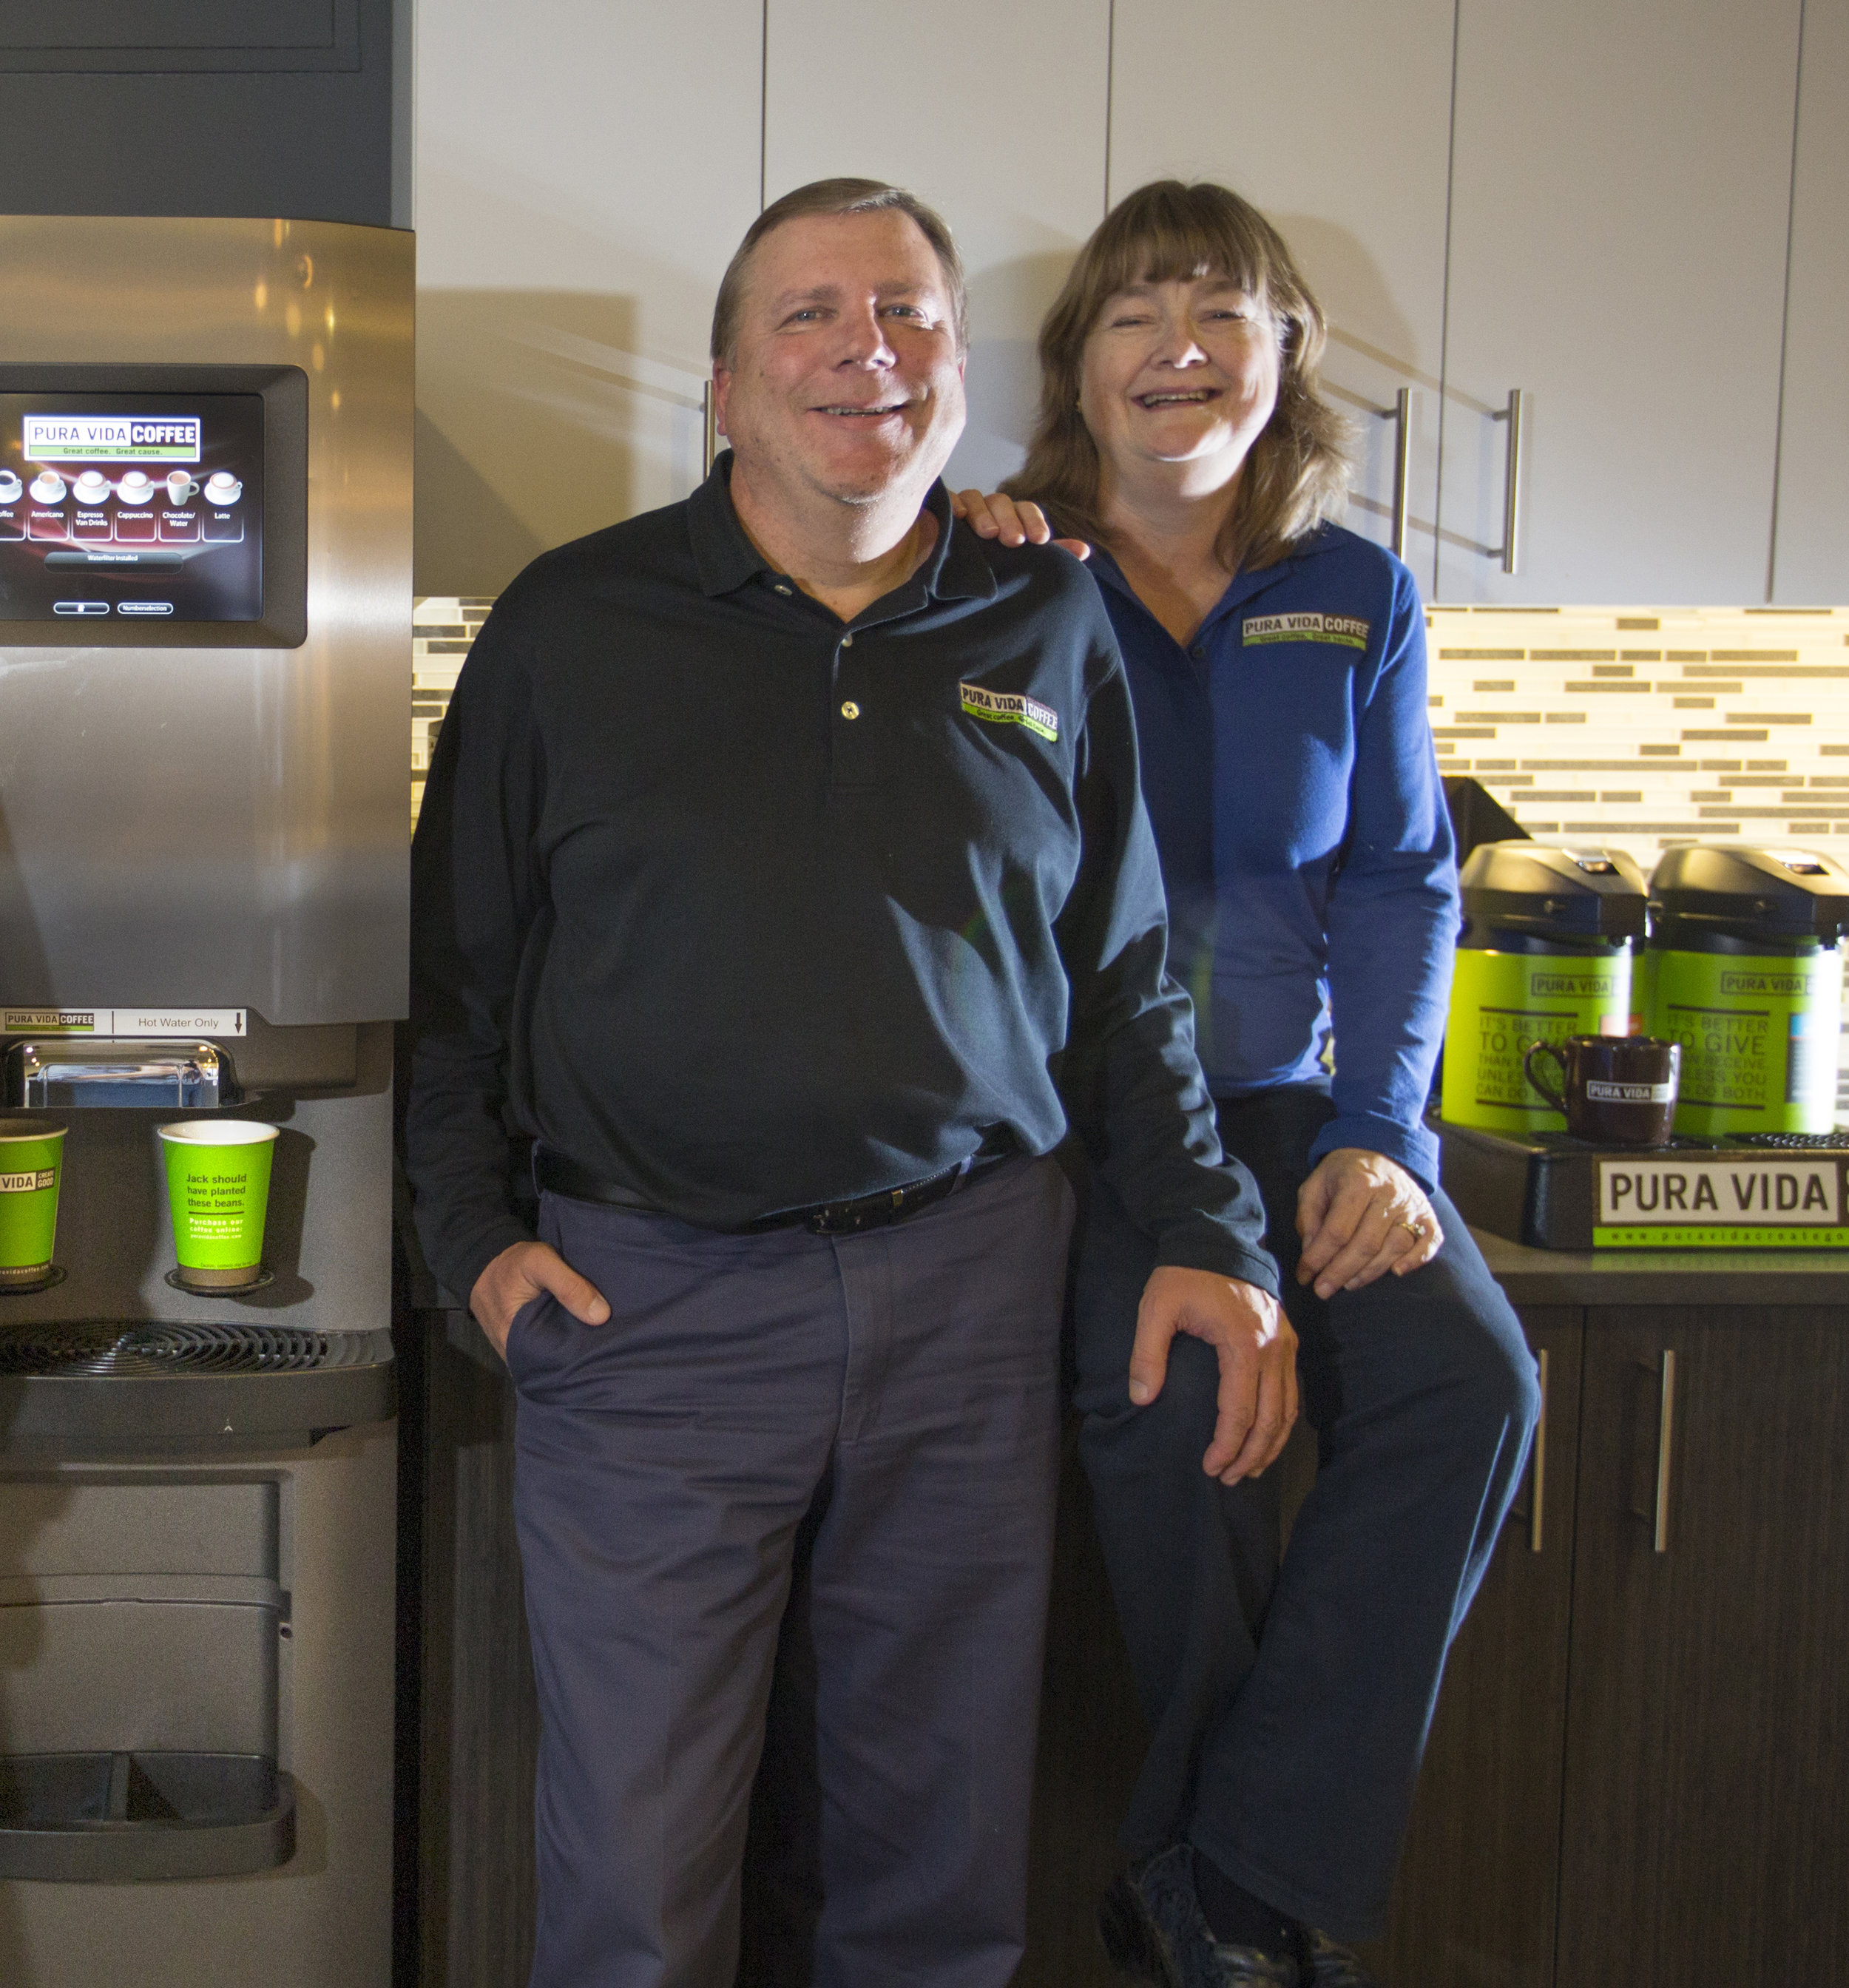 Pictured are a Bean to Cup brewer; and Pura Vida's Ownership Group (left to right) – Jeff and Donna Martin.